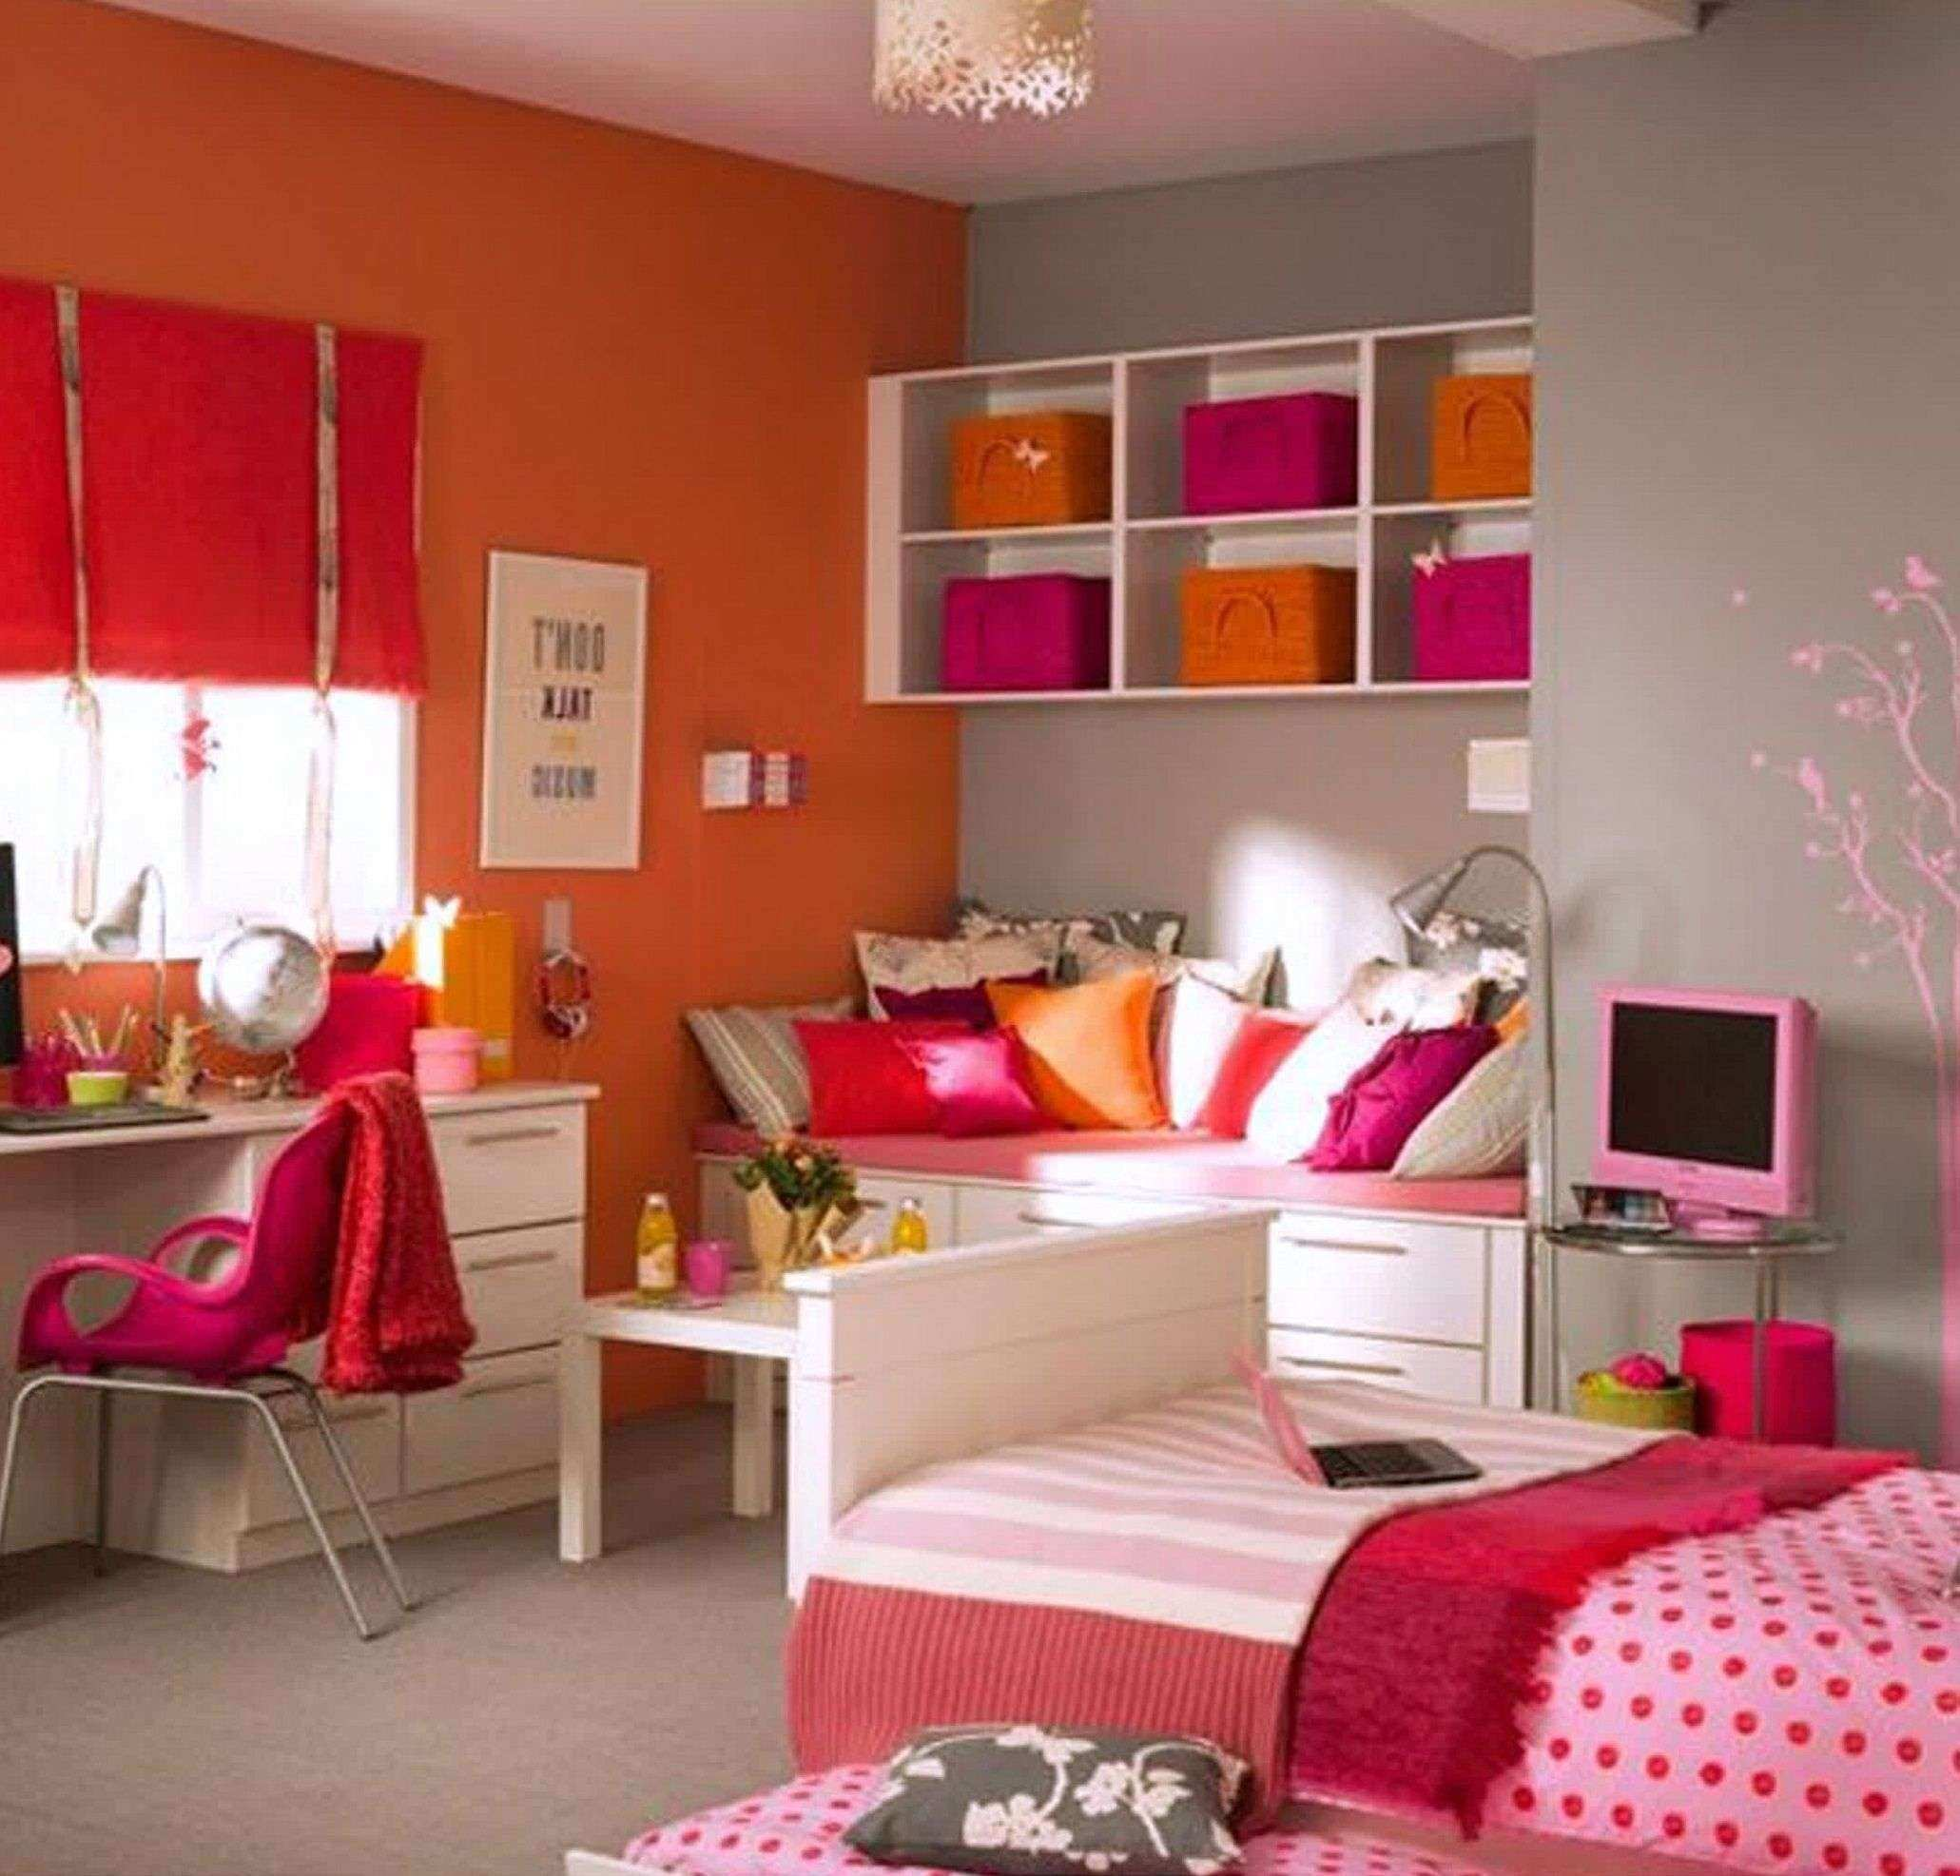 40 Best Kids Room Decorating Ideas